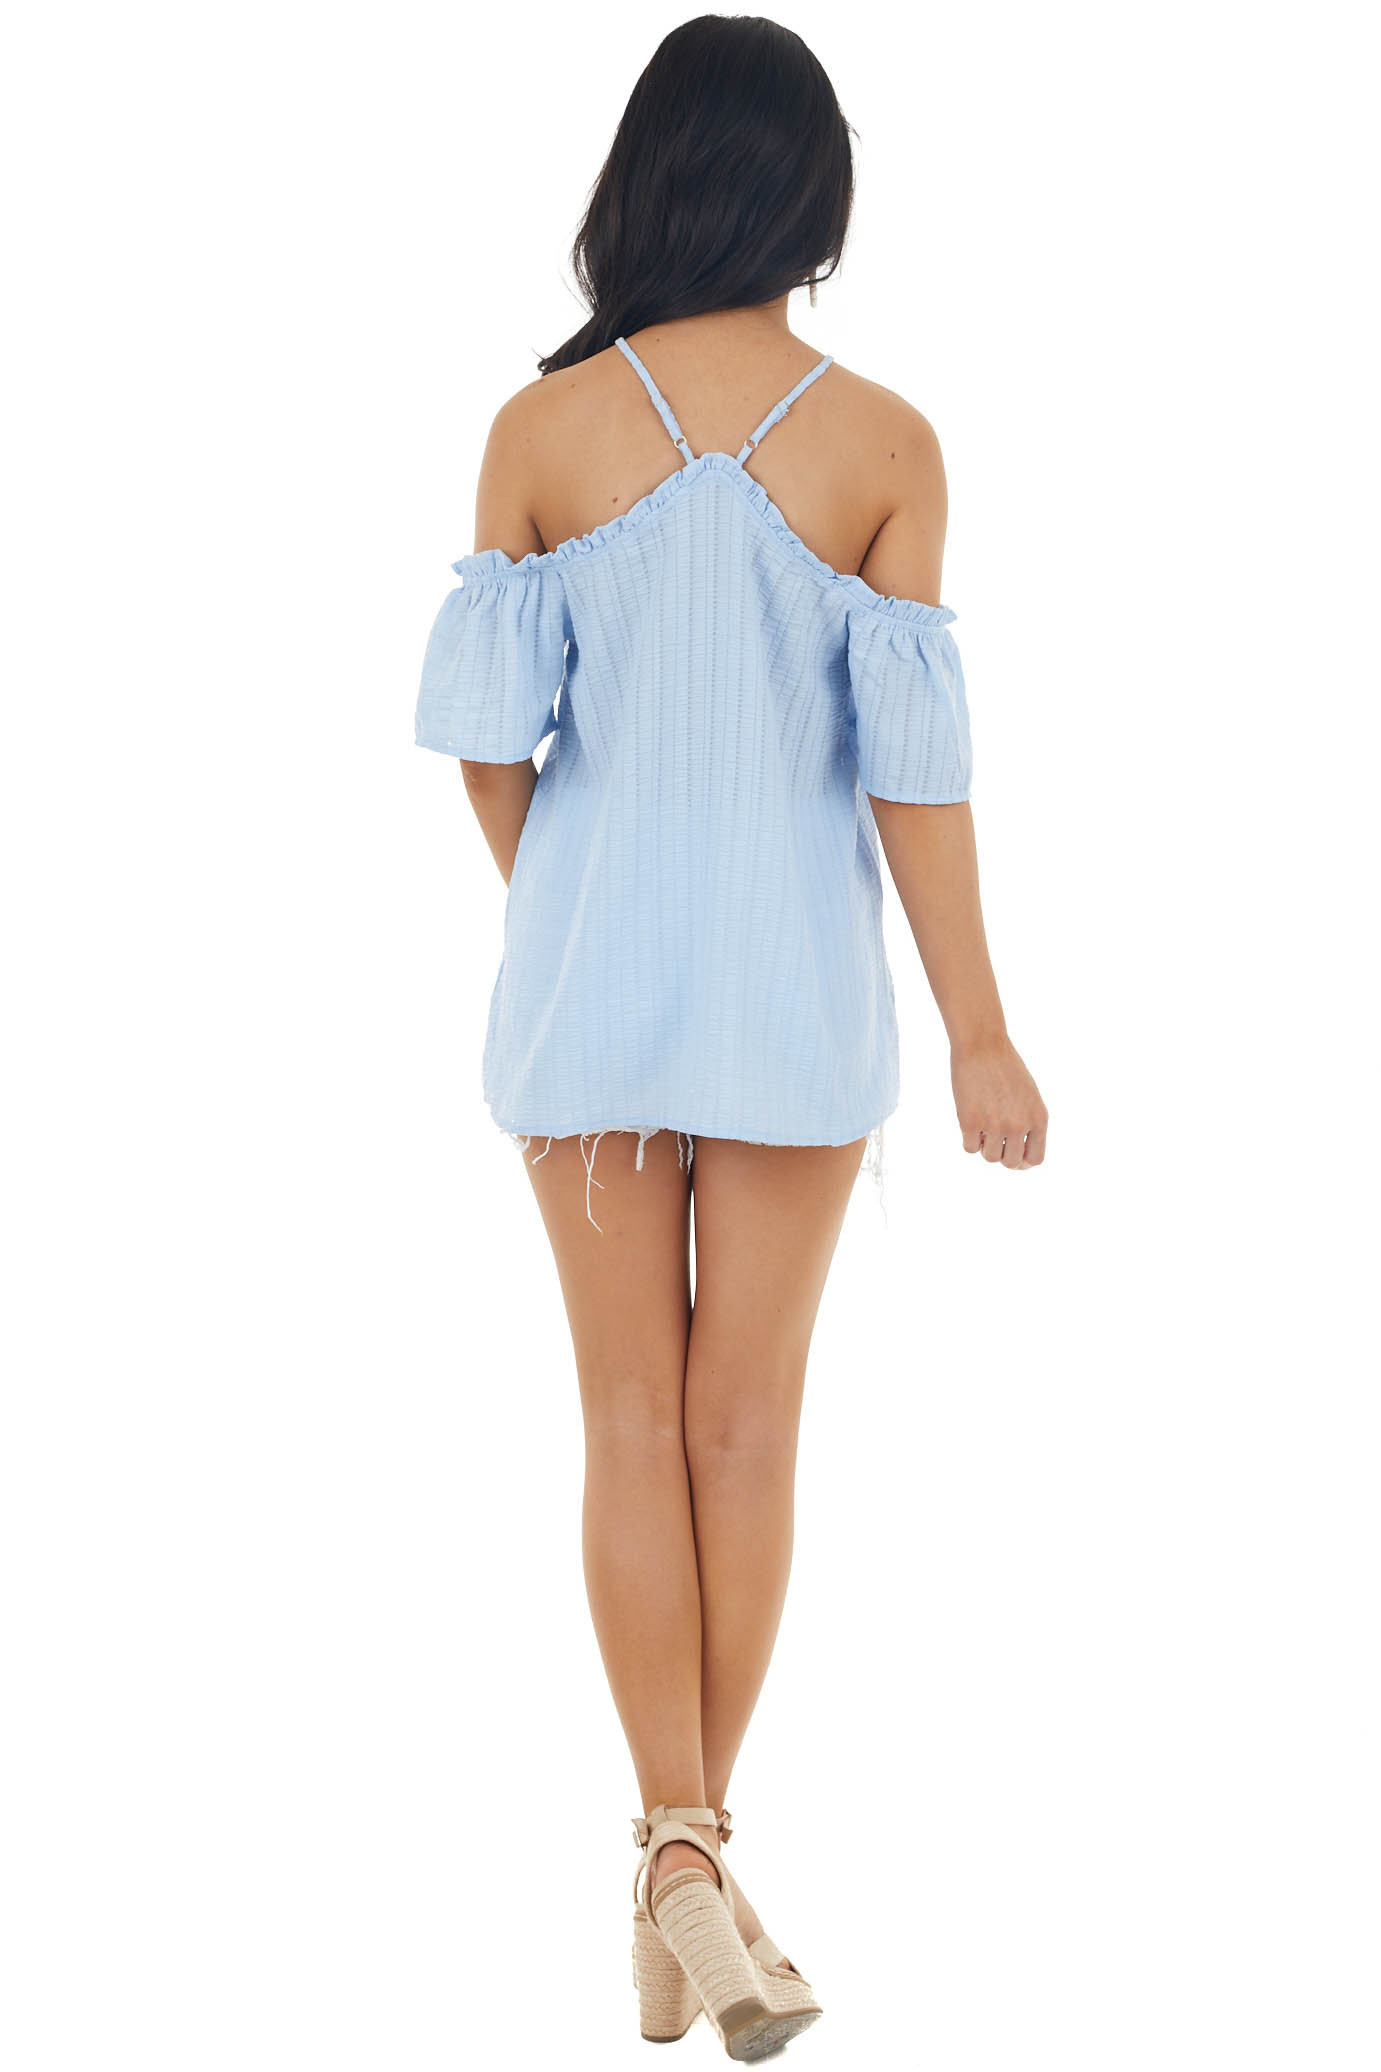 Sky Blue Textured Halter Top with Off The Shoulder Detail